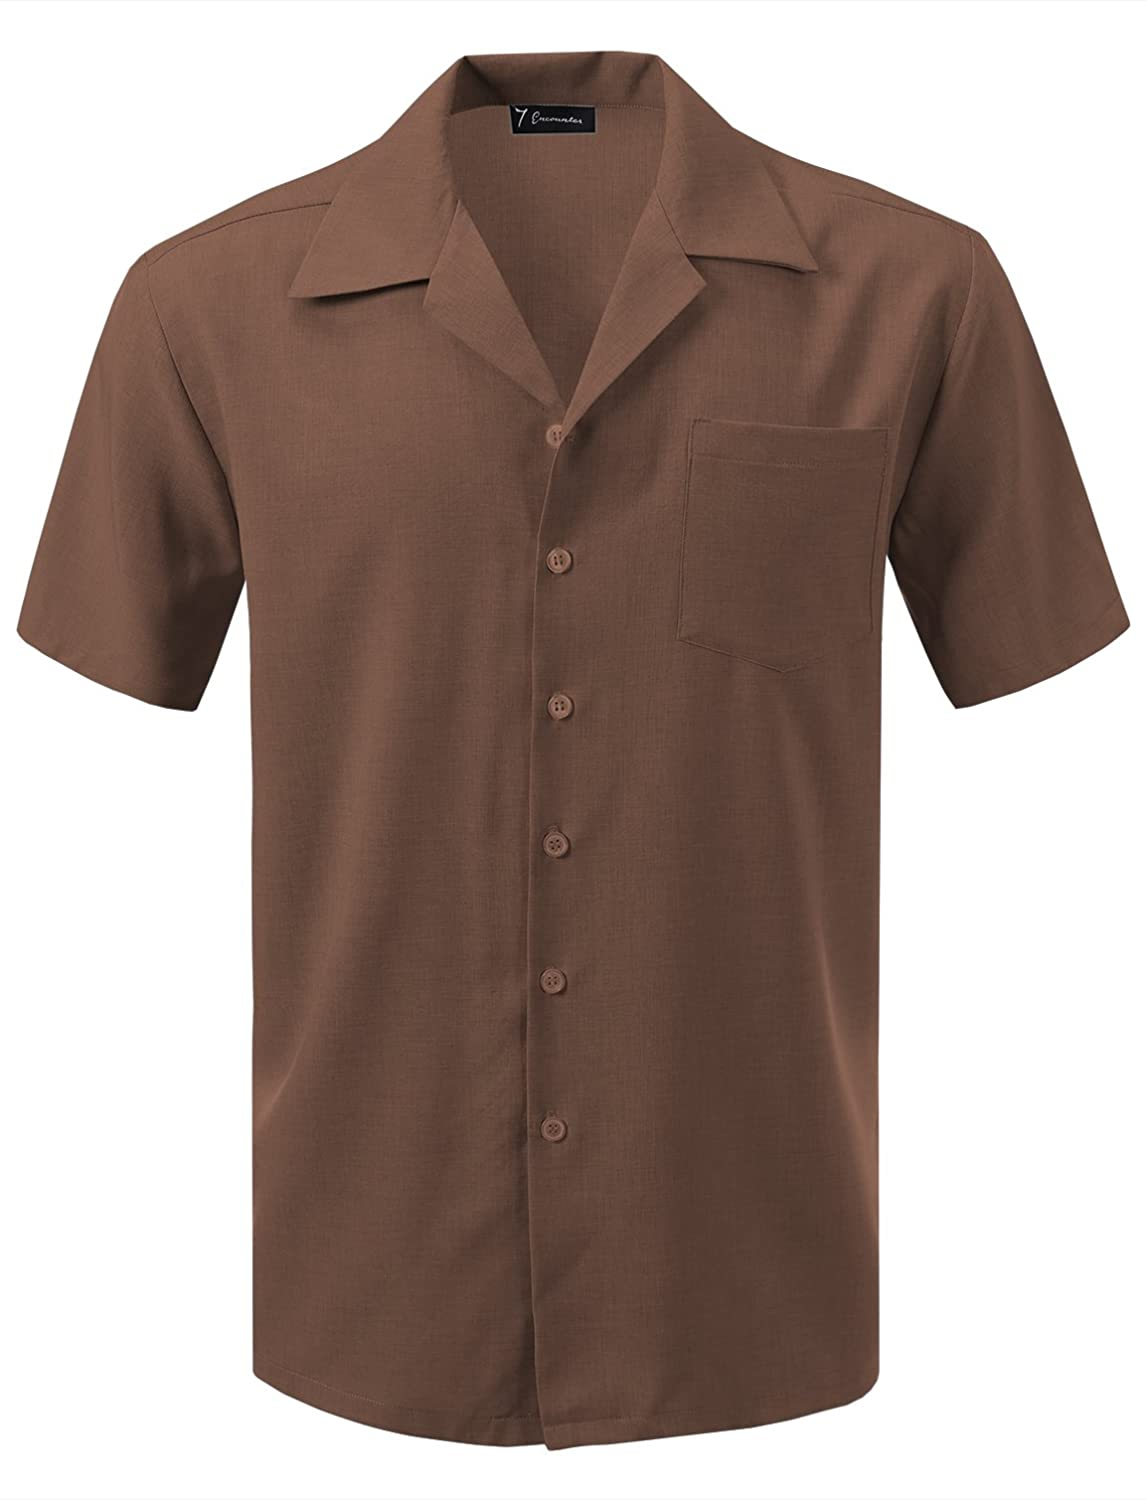 Mens Vintage Shirts – Casual, Dress, T-shirts, Polos 7 Encounter Mens Camp Dress Shirt $29.99 AT vintagedancer.com